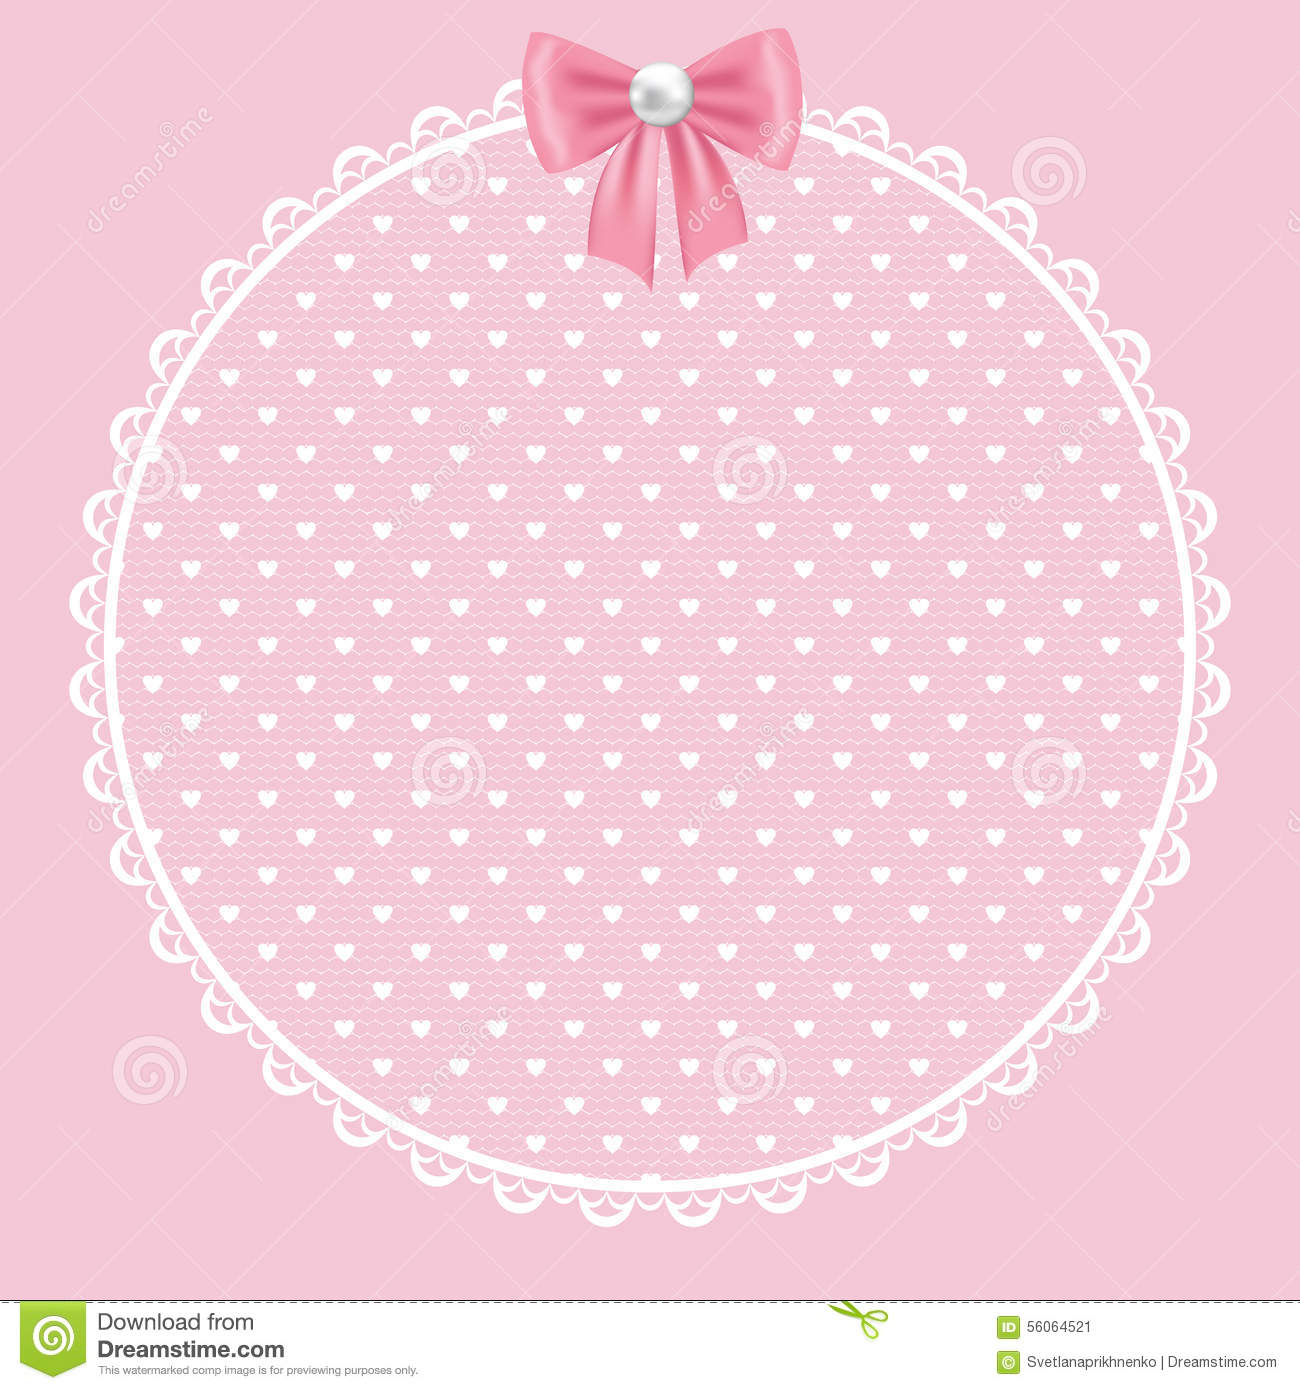 Vector round frame with pink flowers on white background in pastel - Background Card Frame Invitation Lace Pink Wedding White Floral